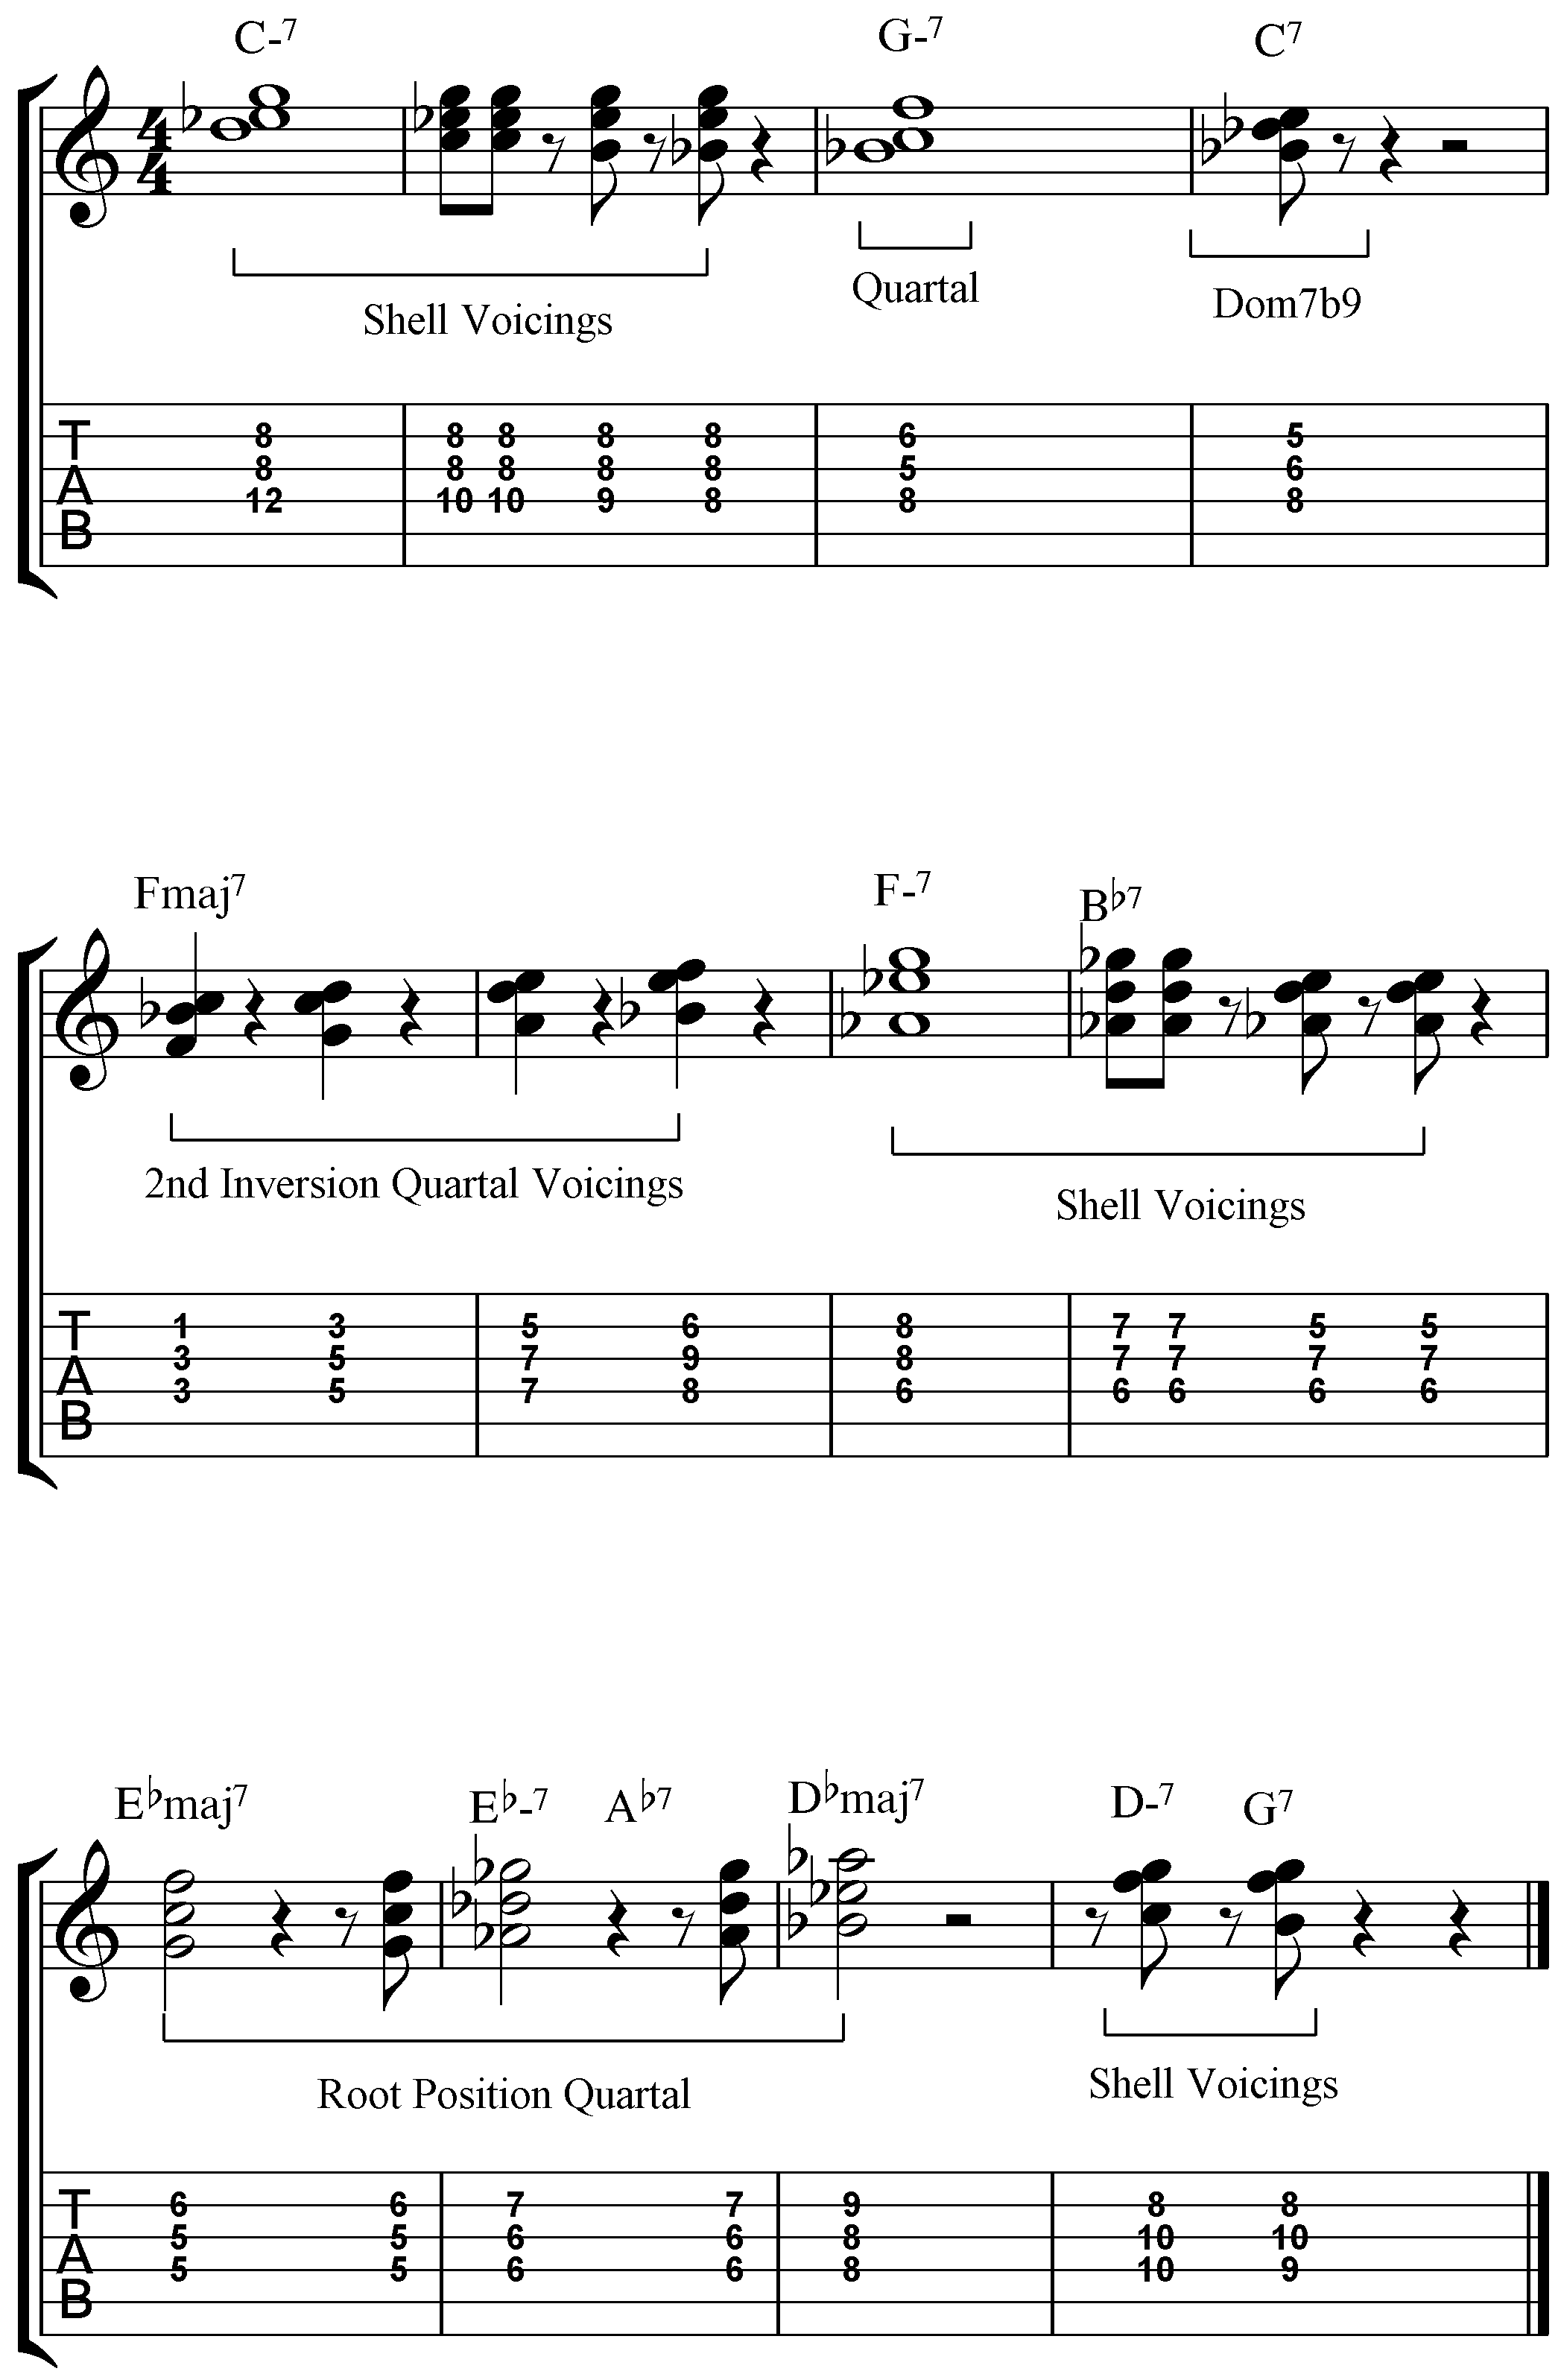 solar chord study for jazz guitar jamie holroyd guitar jamie holroyd guitar. Black Bedroom Furniture Sets. Home Design Ideas